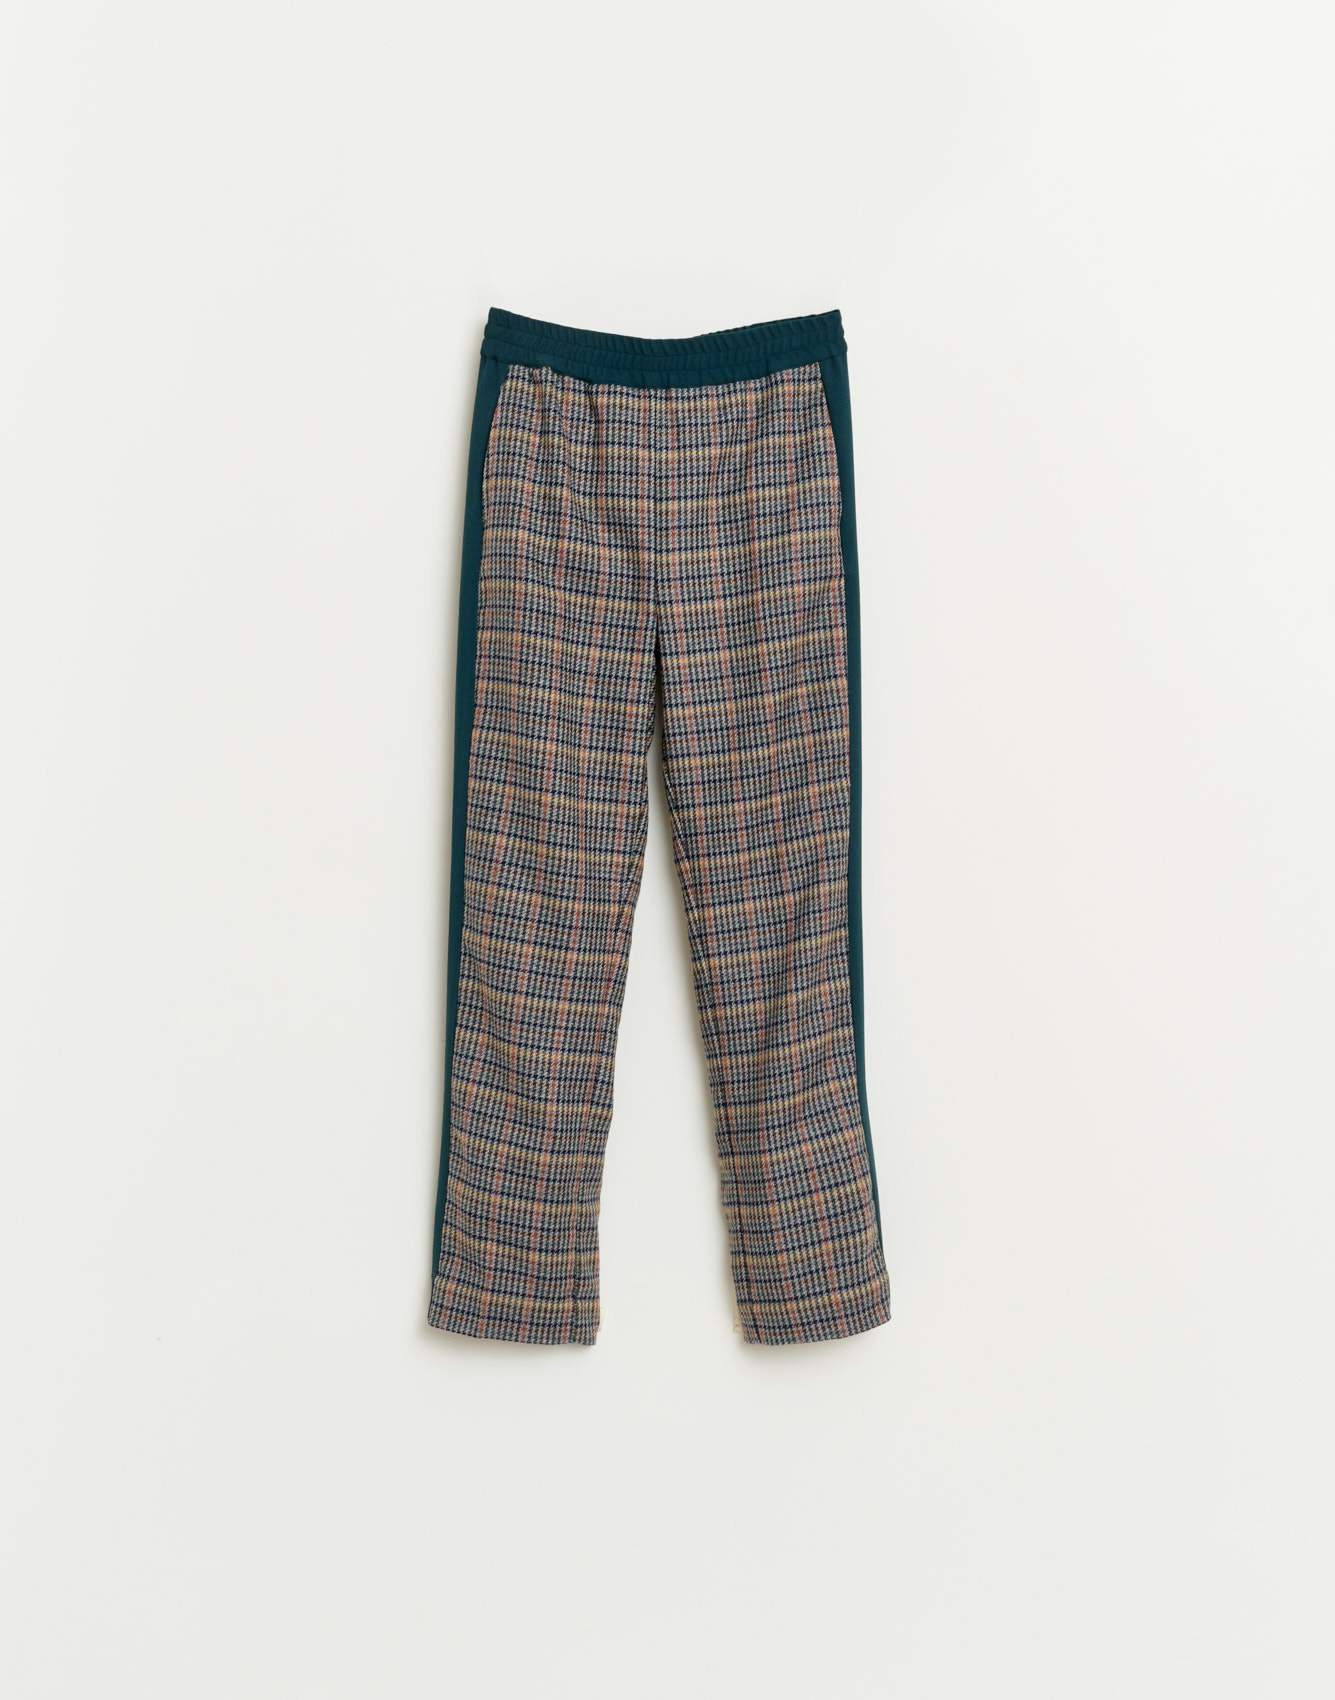 BLR_GIRLS_TROUSER_ADISON92_C0890_CHECKB__2_5000x5000.jpg